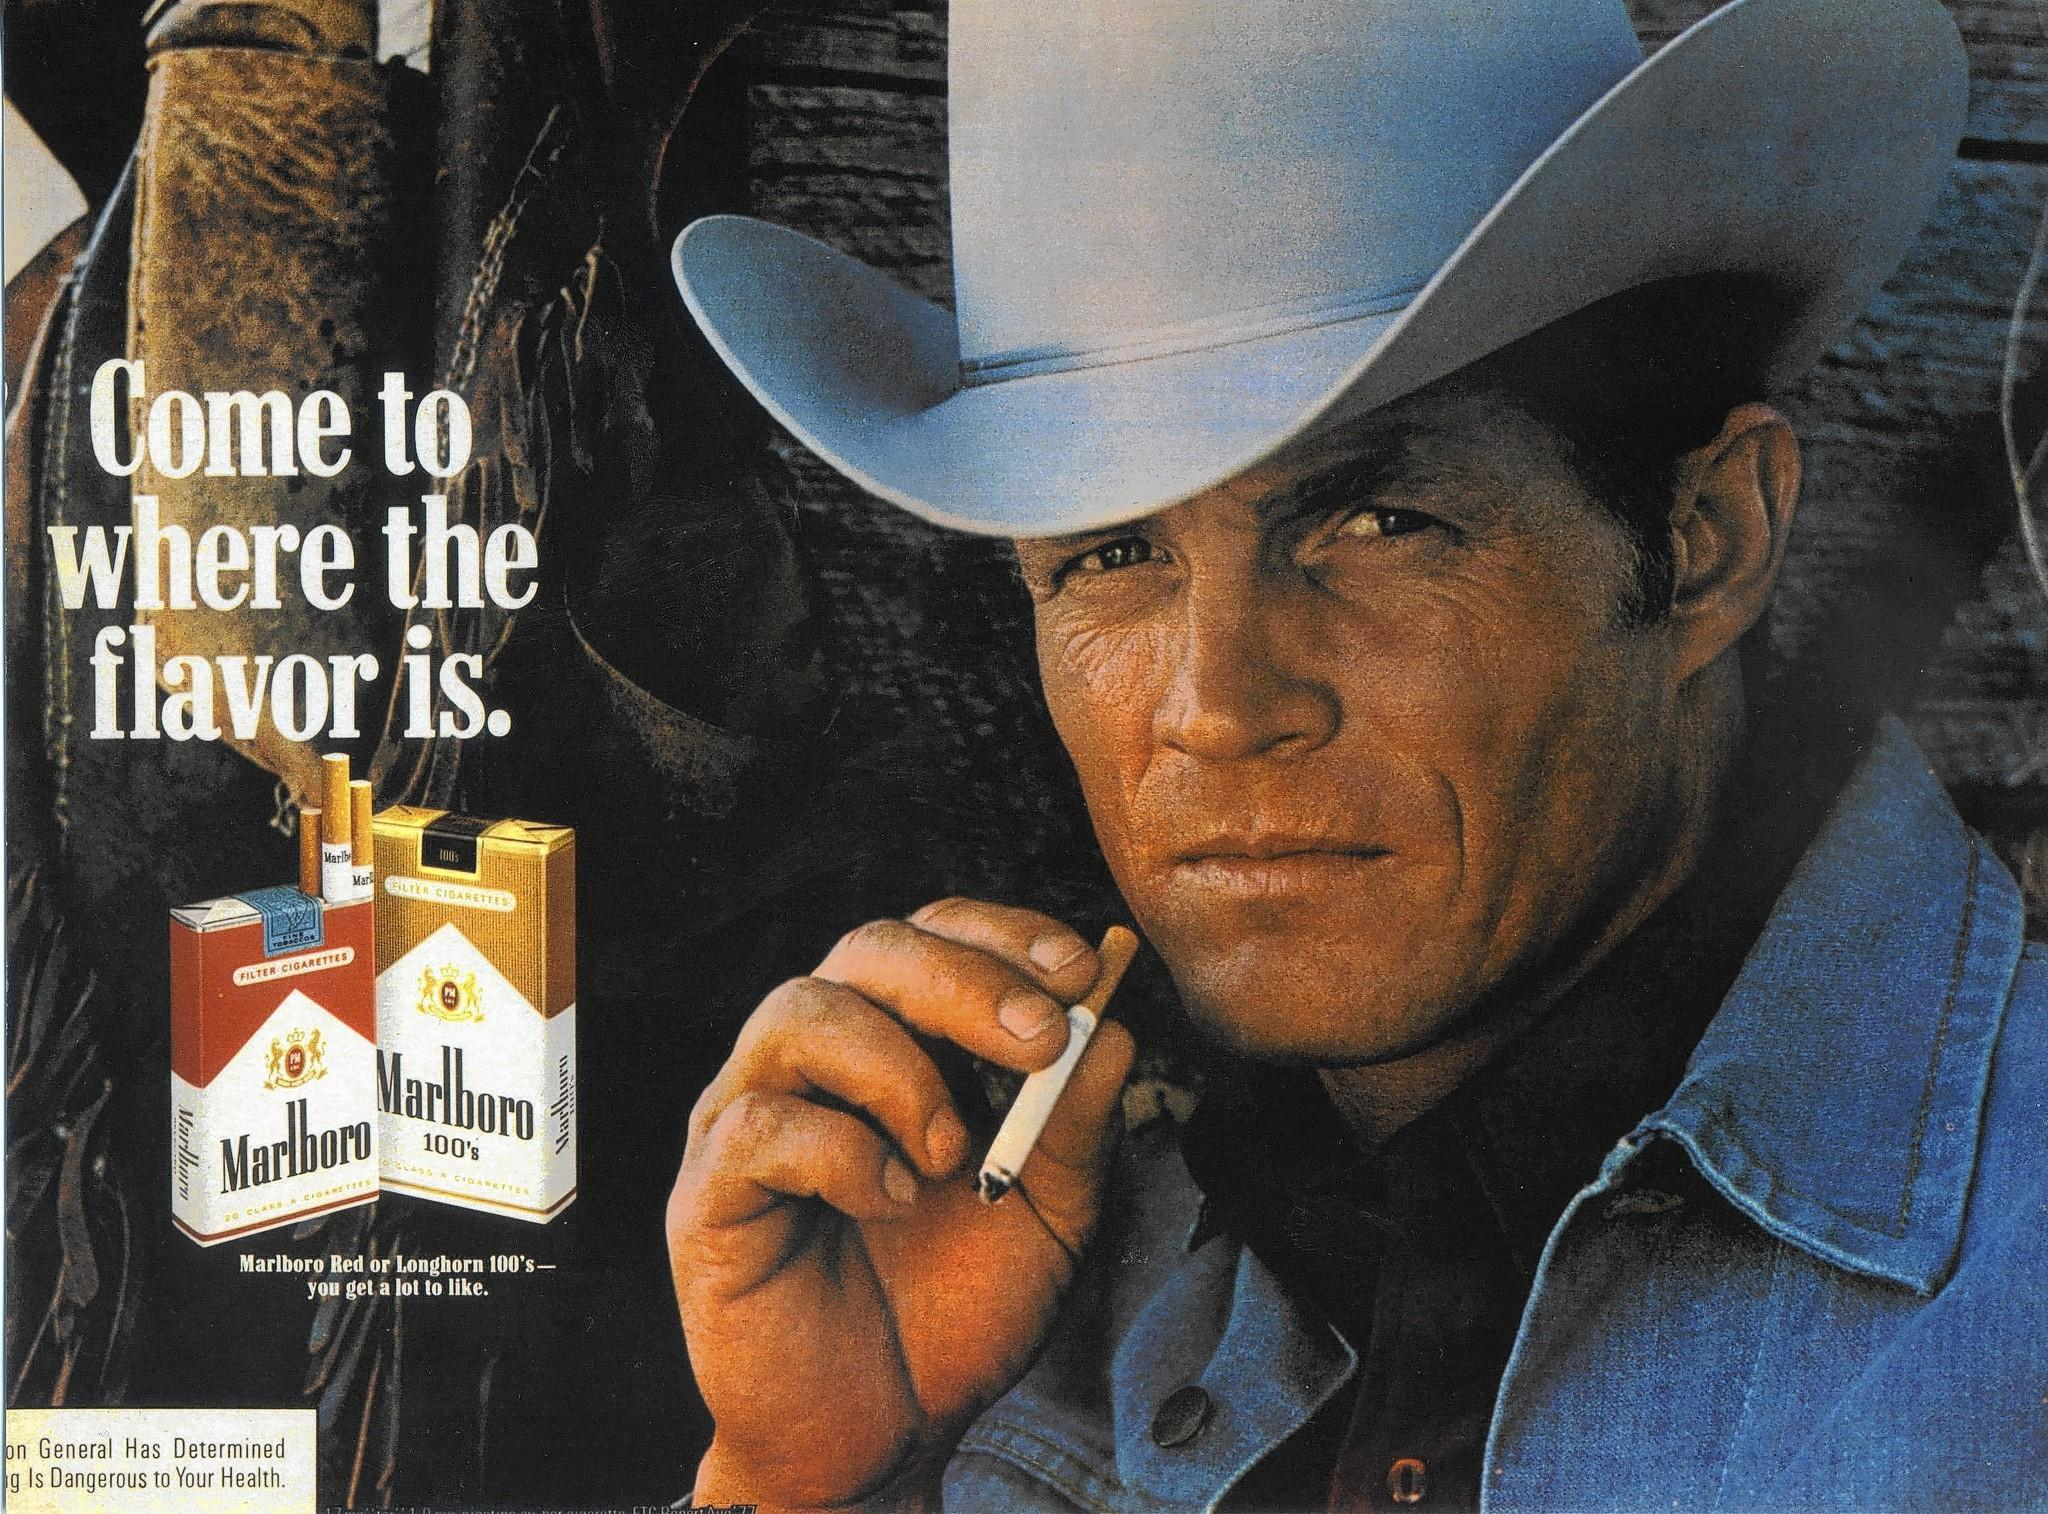 Eric Lawson, who portrayed the rugged Marlboro man in cigarette ads during the late 1970s, died Jan. 10 at his home in San Luis Obispo of respiratory failure due to chronic obstructive pulmonary disease. He was 72.